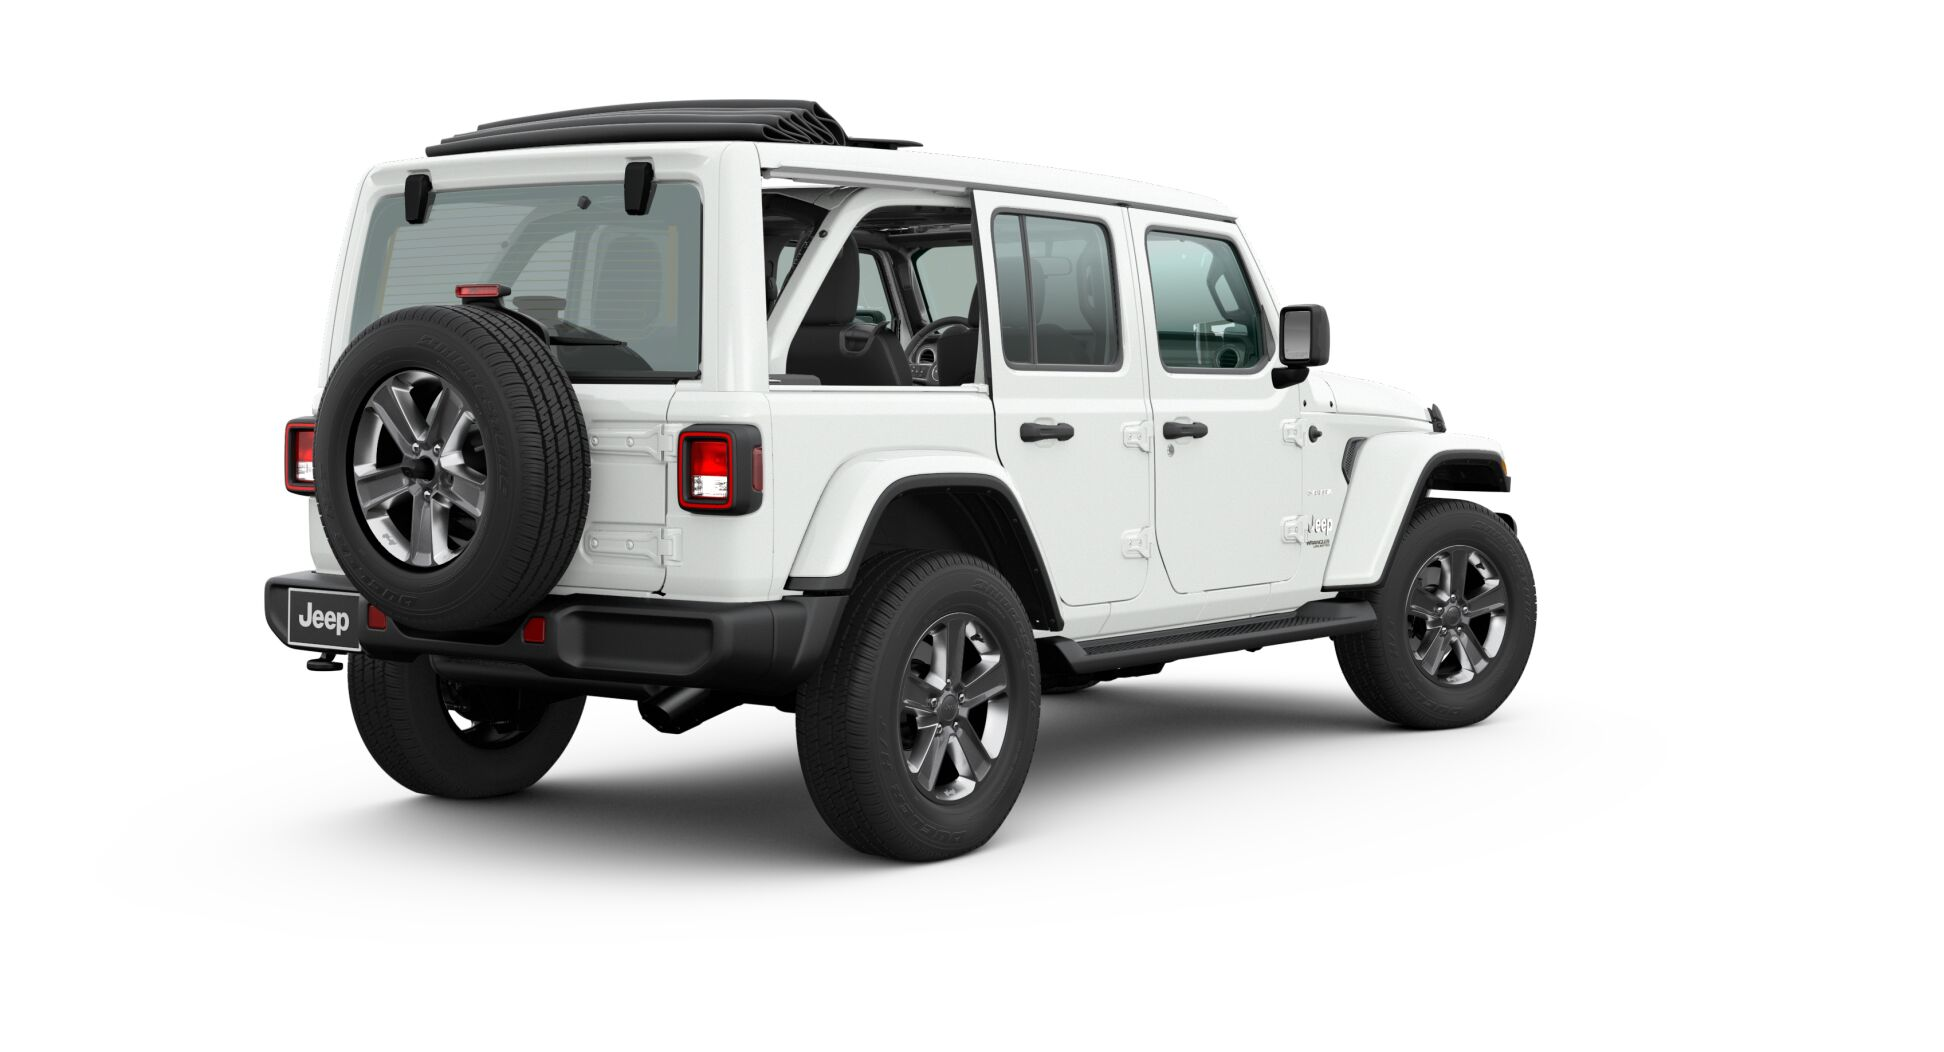 2020 Jeep Wrangler Sky One-Touch™ Power Top down